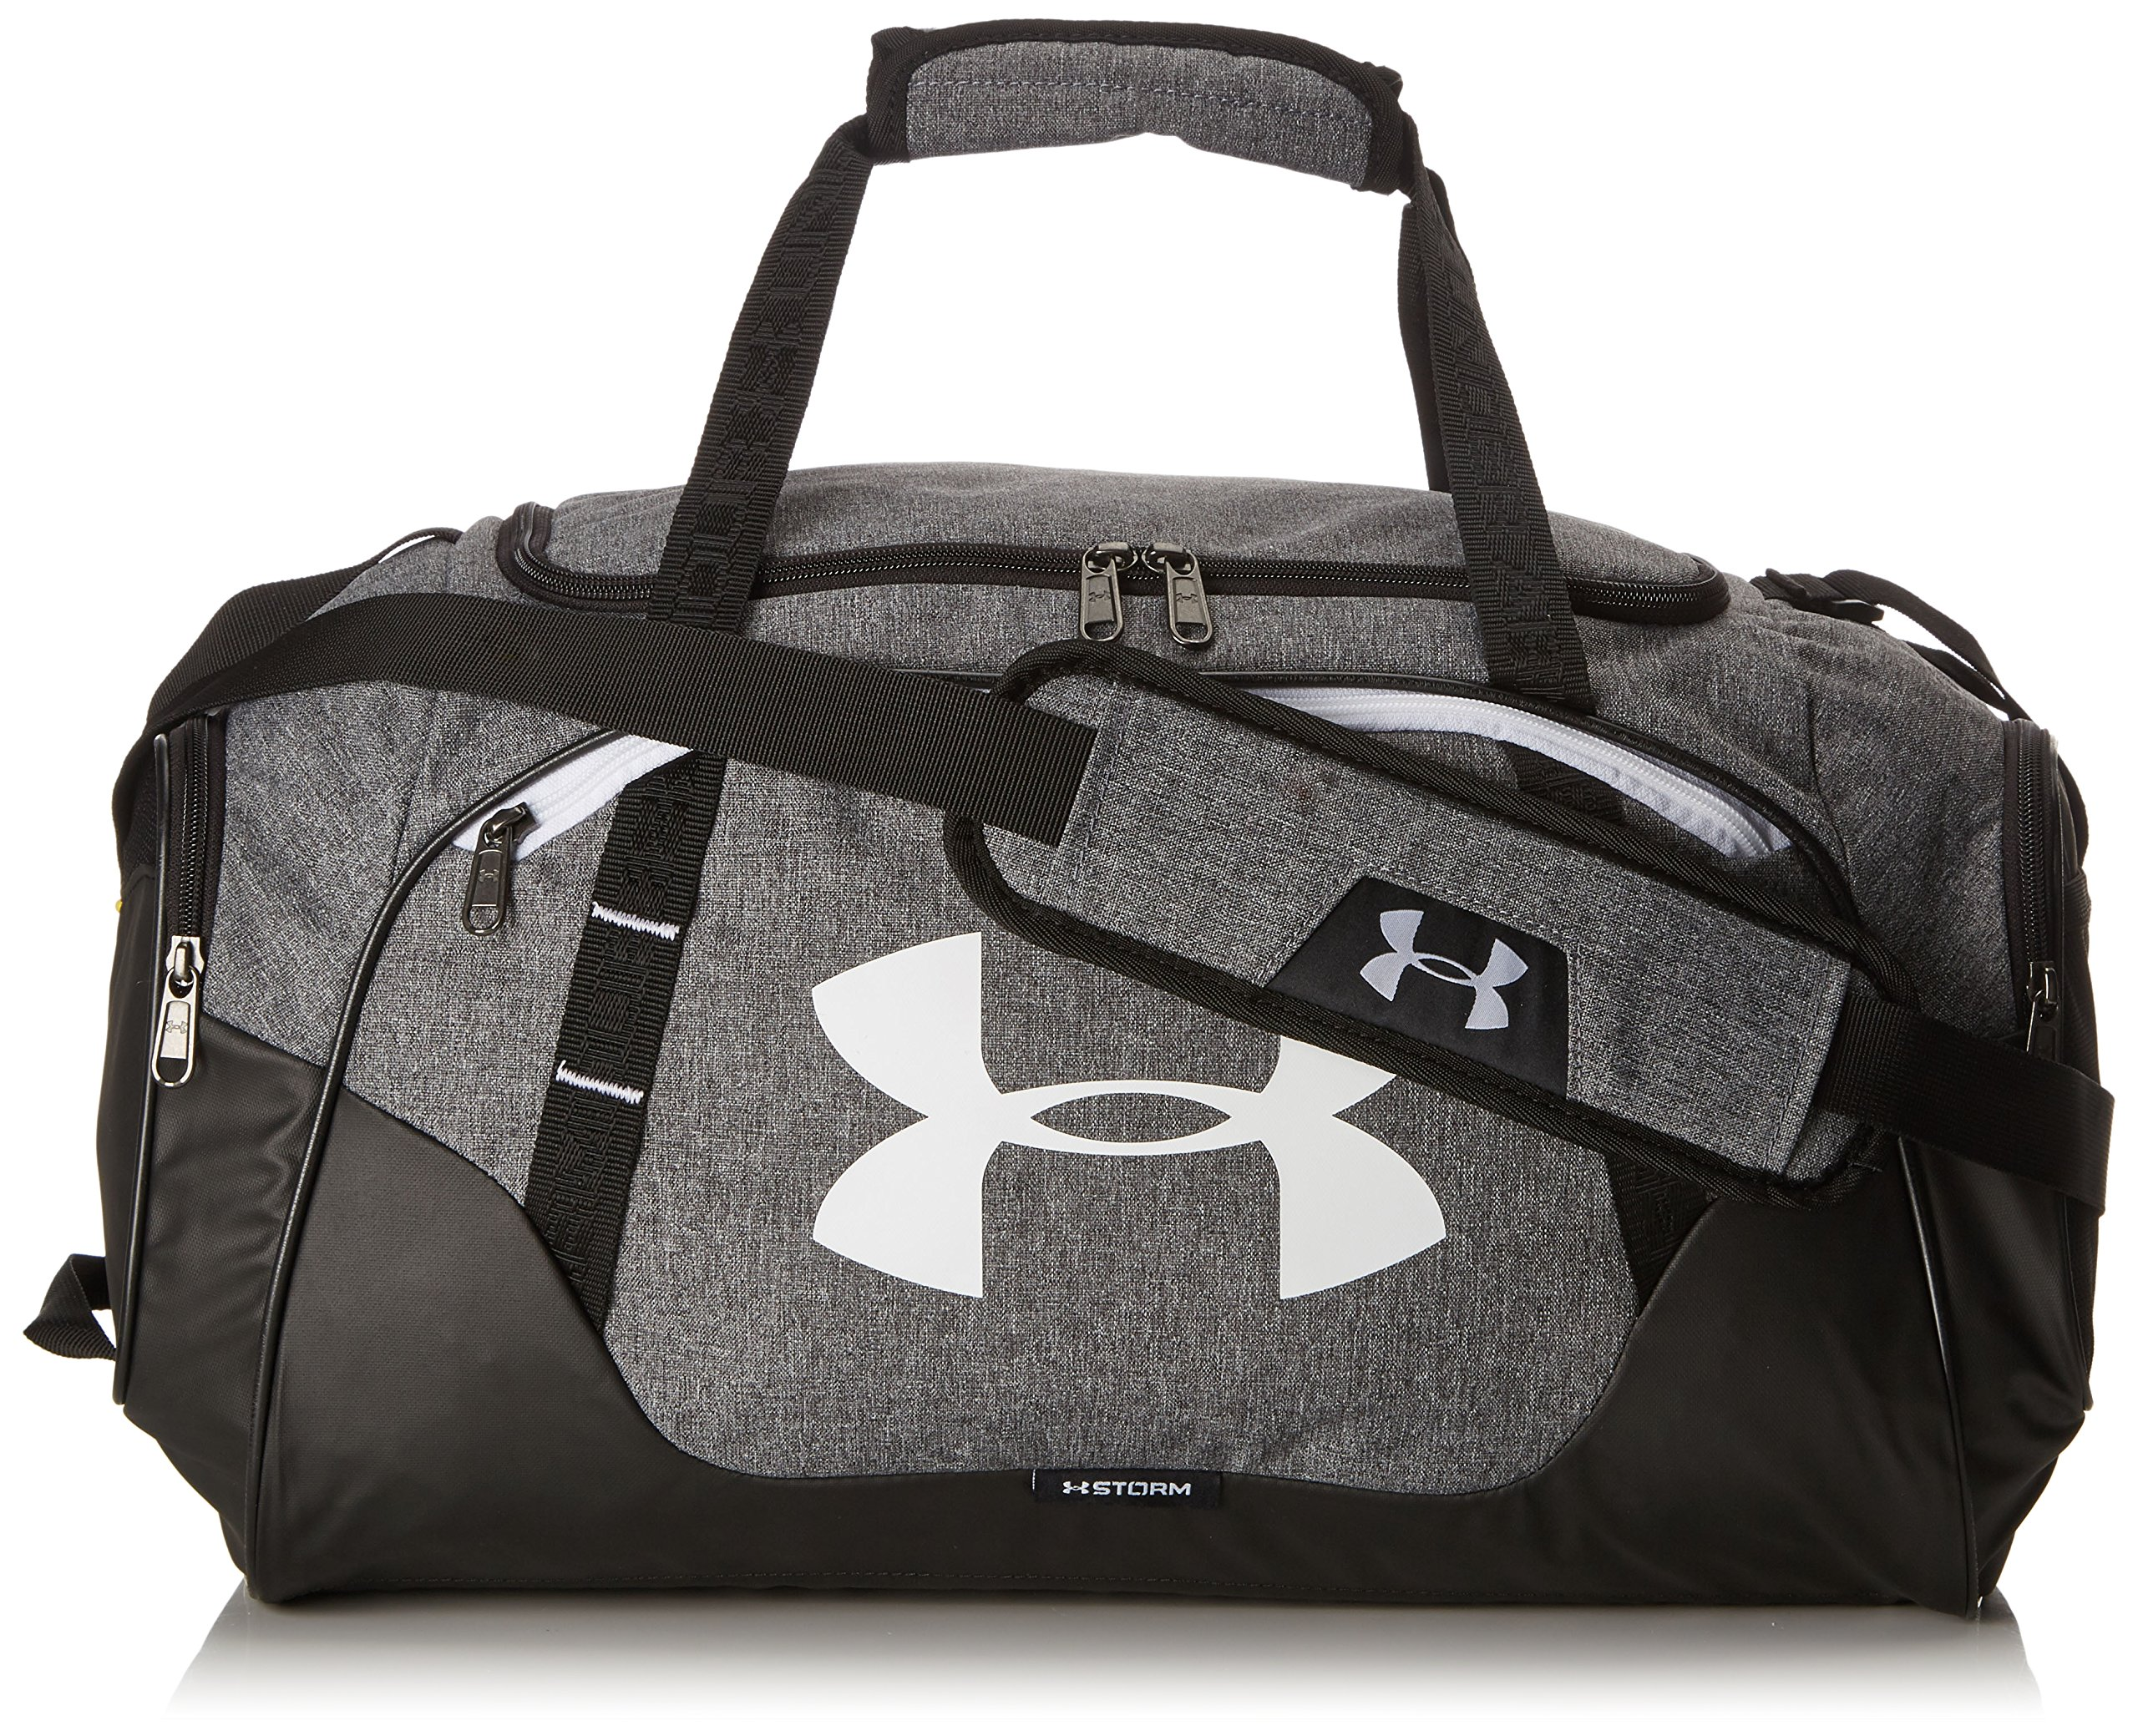 Under Armour Unisex 3.0 innegable Duffel Bag, color gris, pequeña